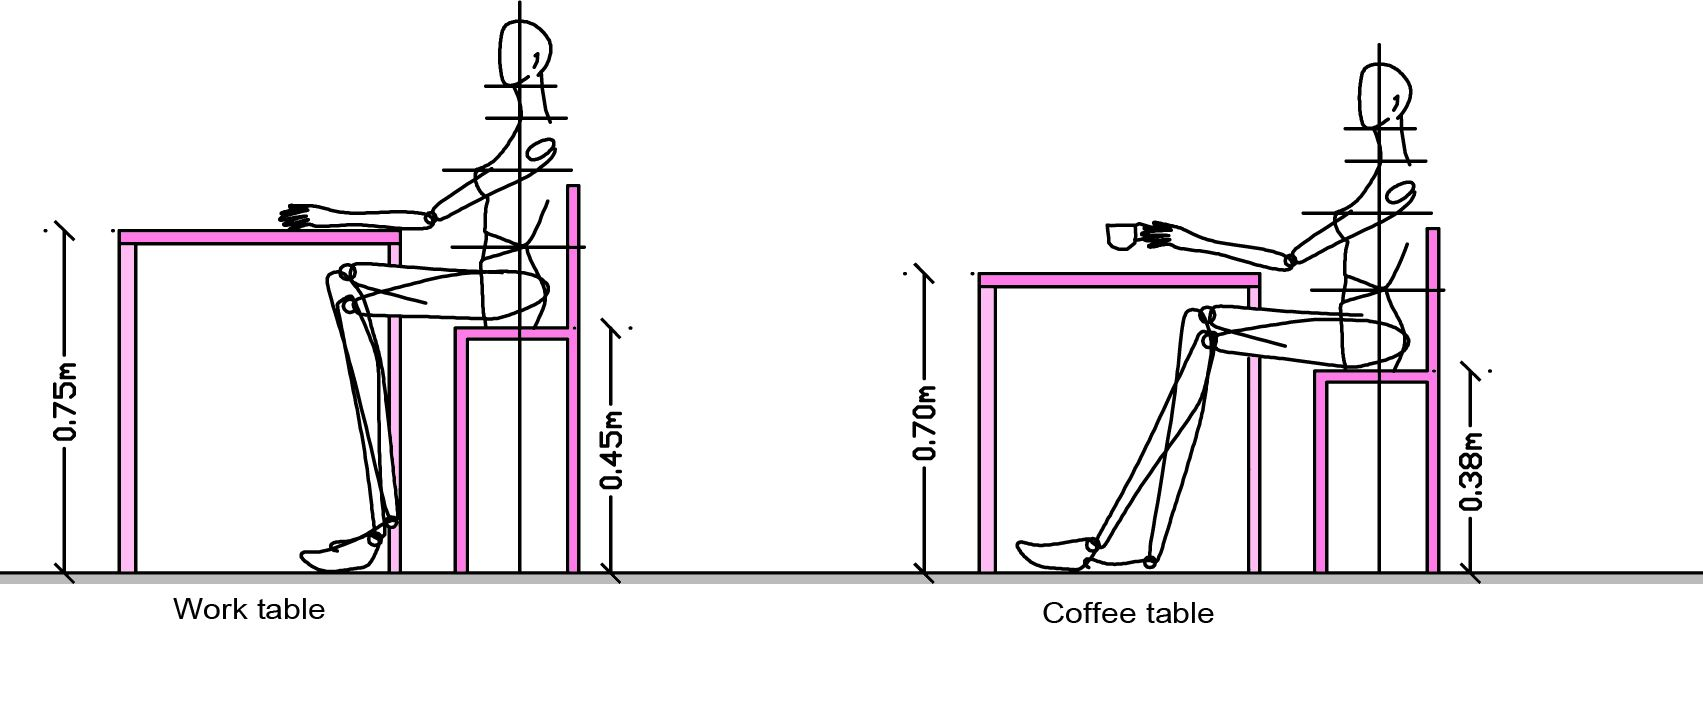 Body measurements ergonomics for table and chair dining for Office design ergonomics